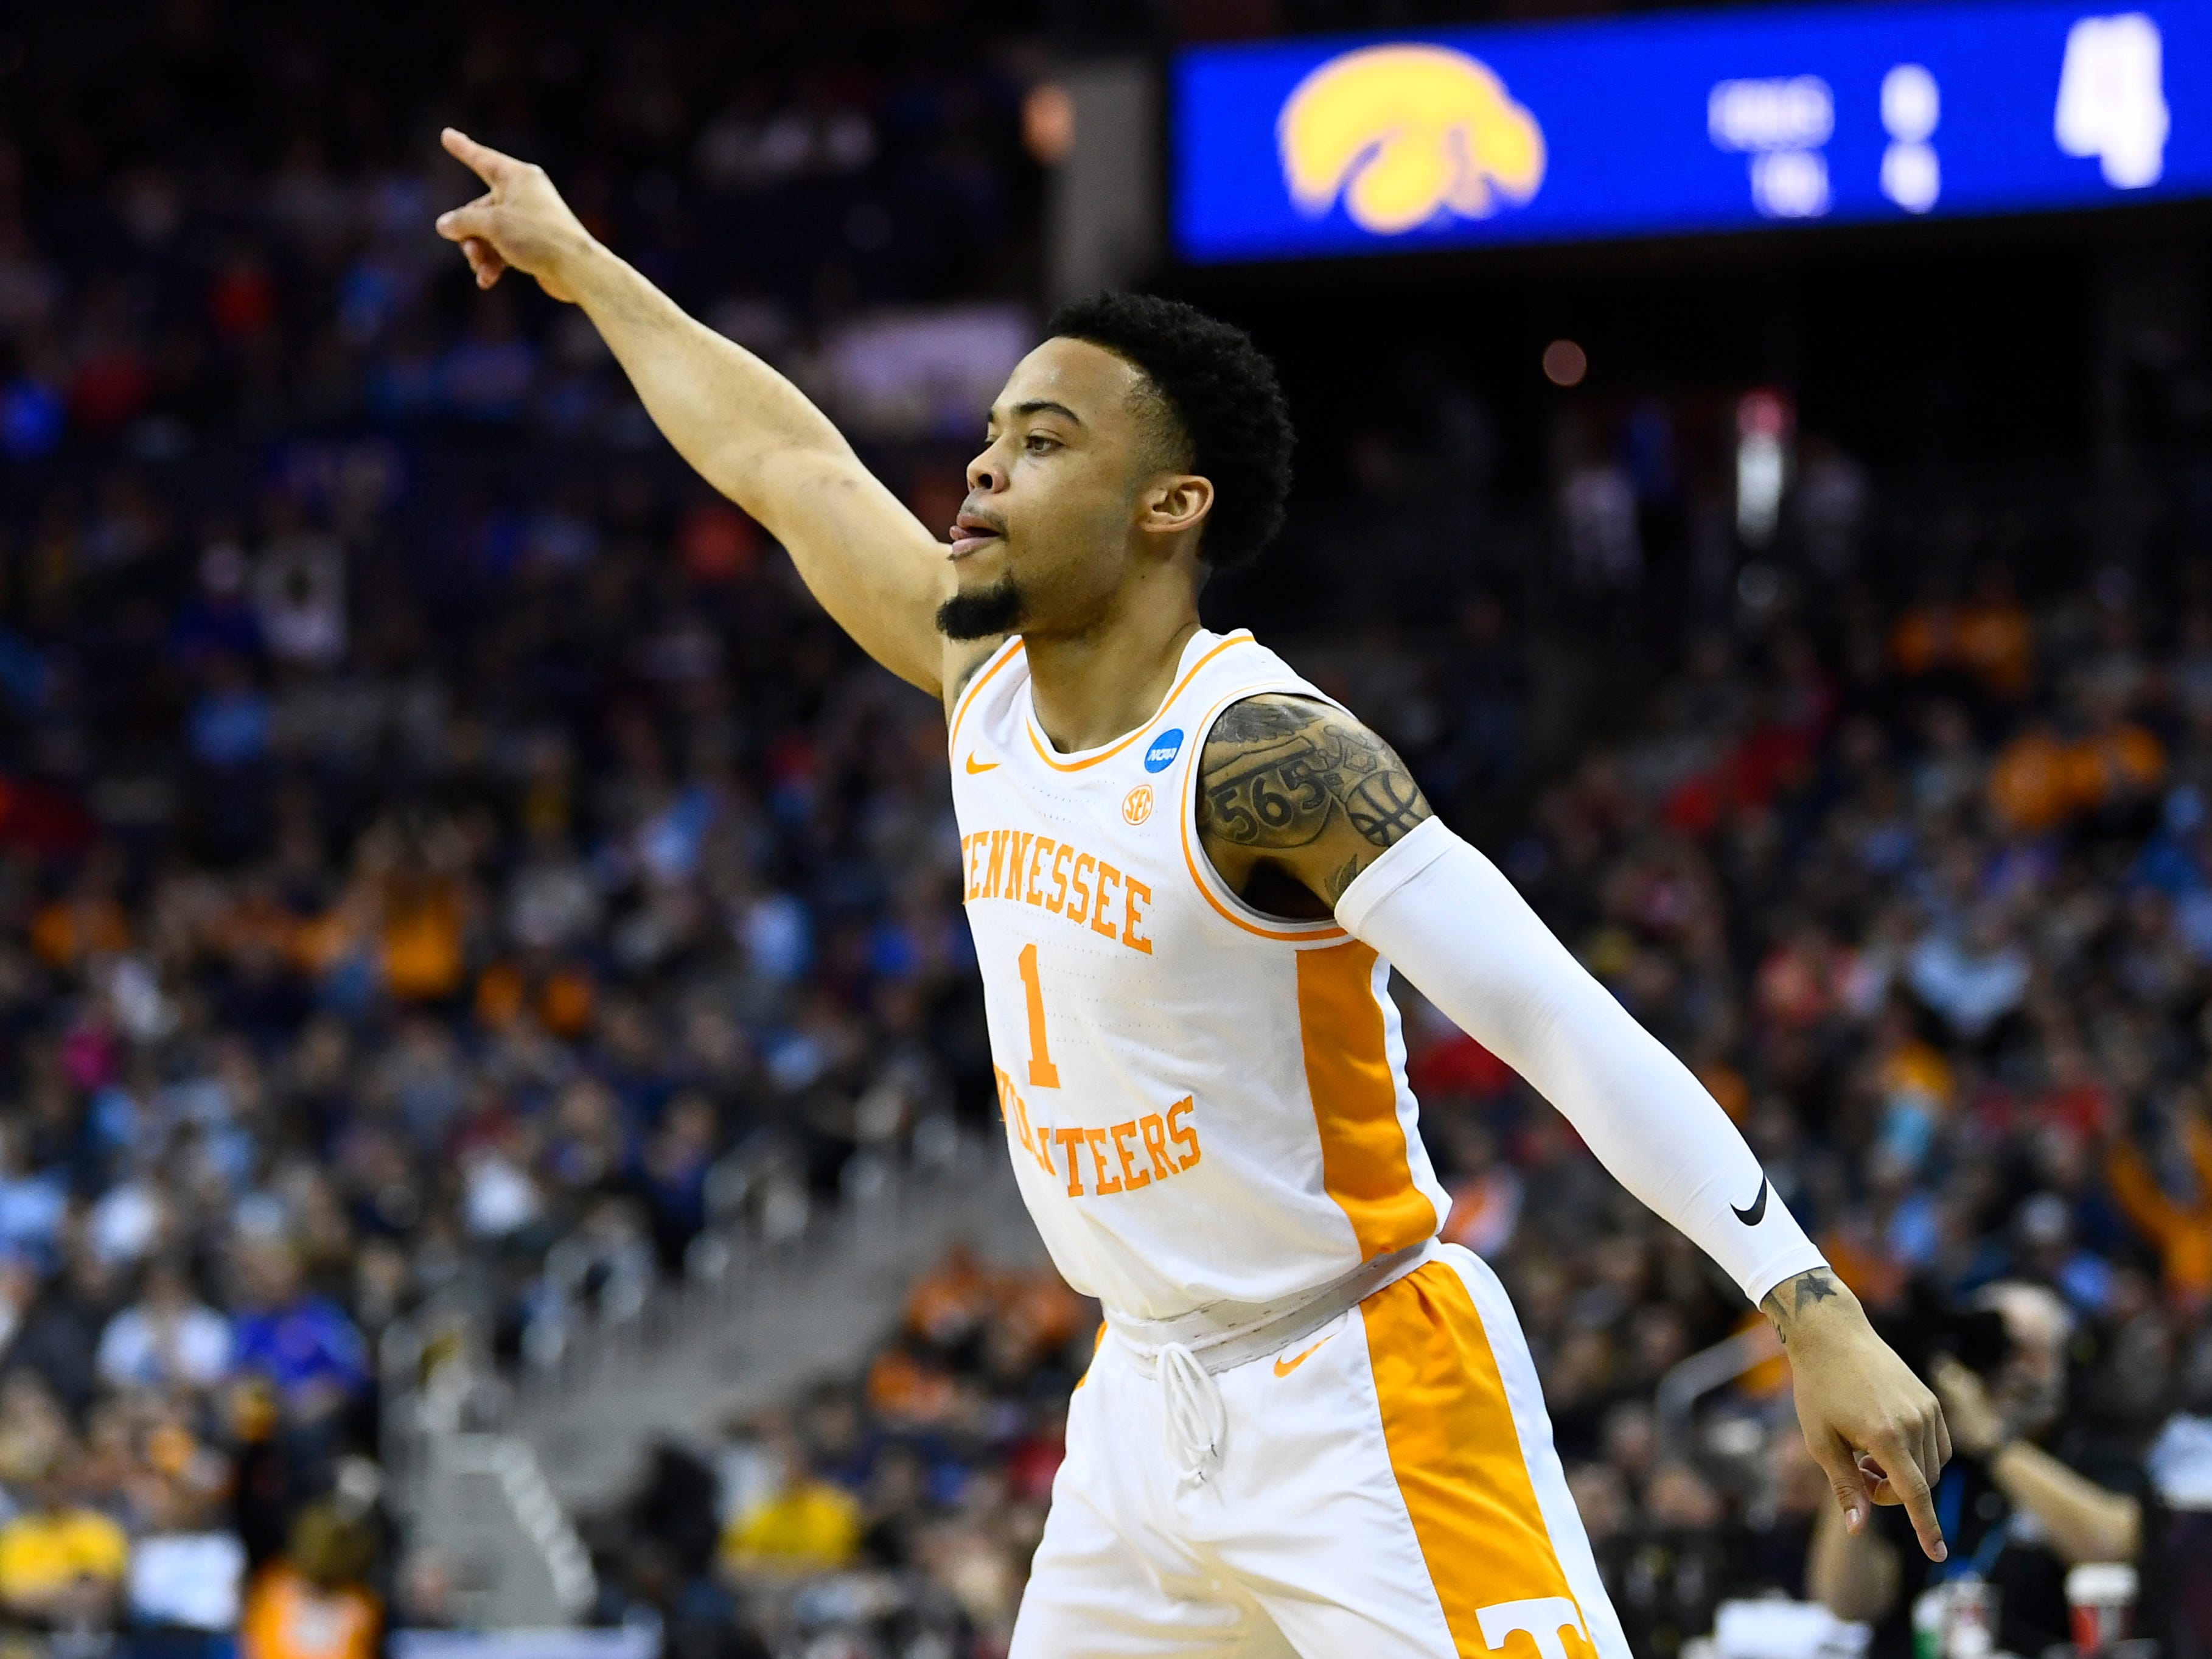 Tennessee guard Lamonte Turner (1) celebrates his three-pointer during the first half of the game against the Iowa Hawkeyes in the second round of the NCAA Tournament at Nationwide Arena in Columbus, Ohio, Sunday, March 24, 2019.